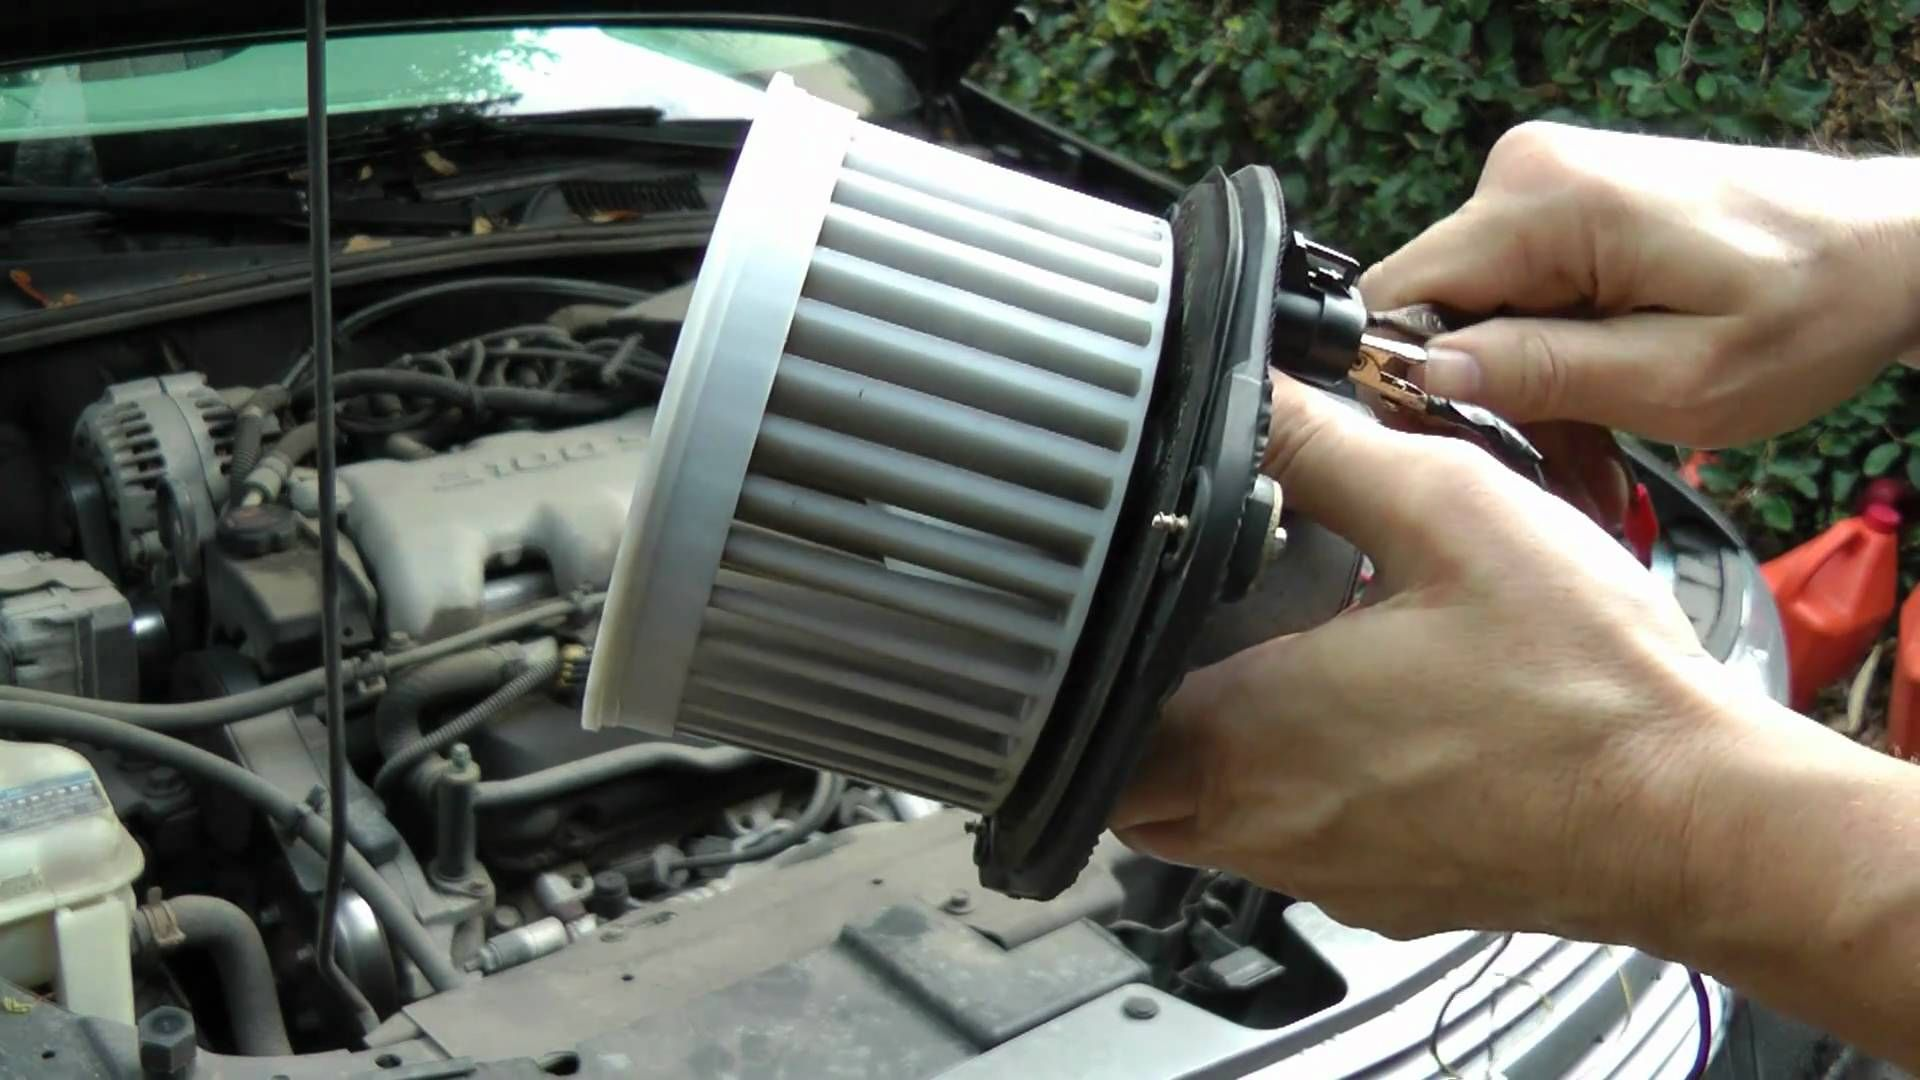 Replacing A Blower Motor That Doesn't Blow Hot air, Auto